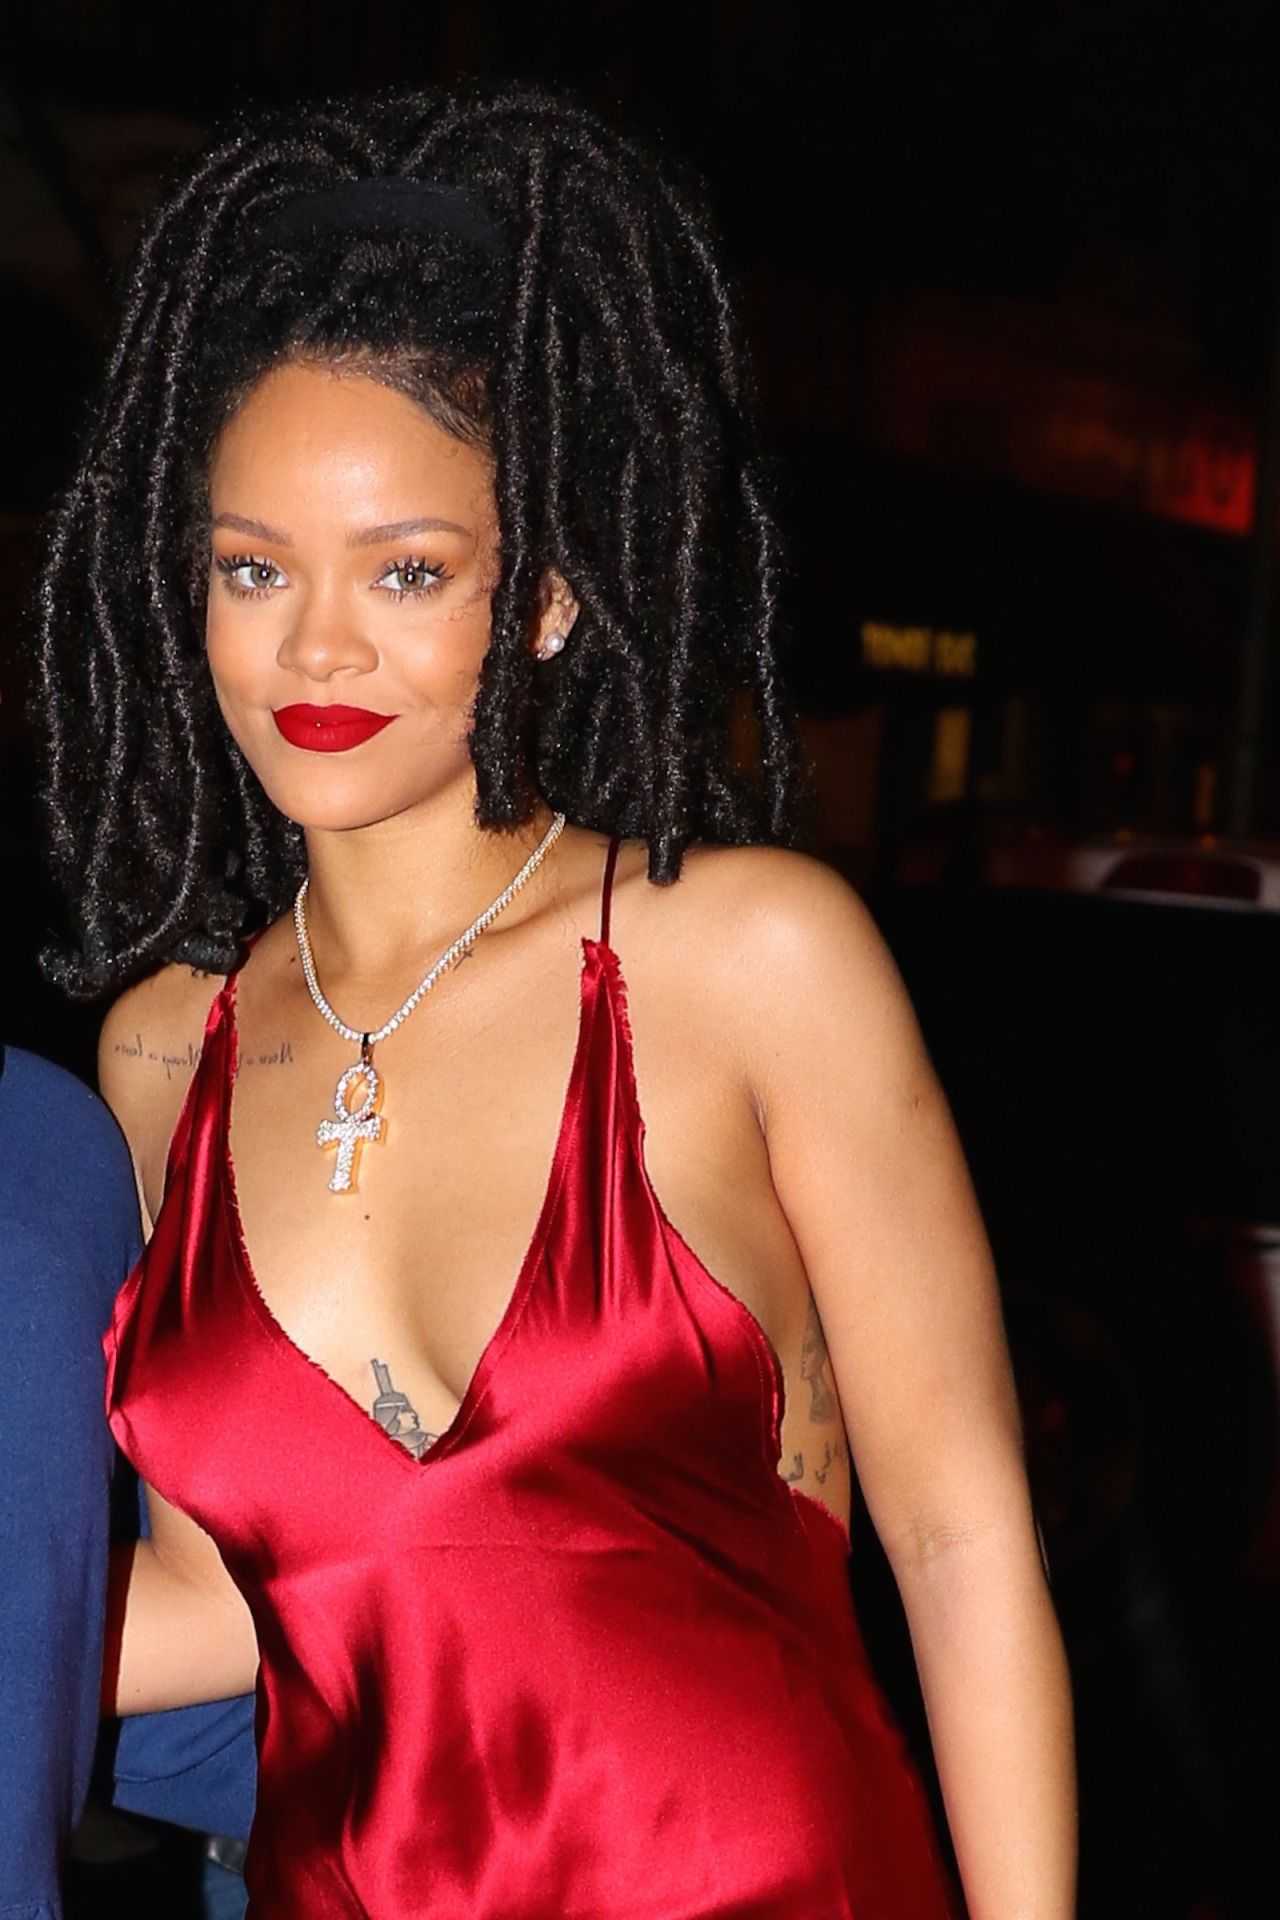 Rihanna Night Out Style - Arriving at Carbone Restaurant ... Rihanna